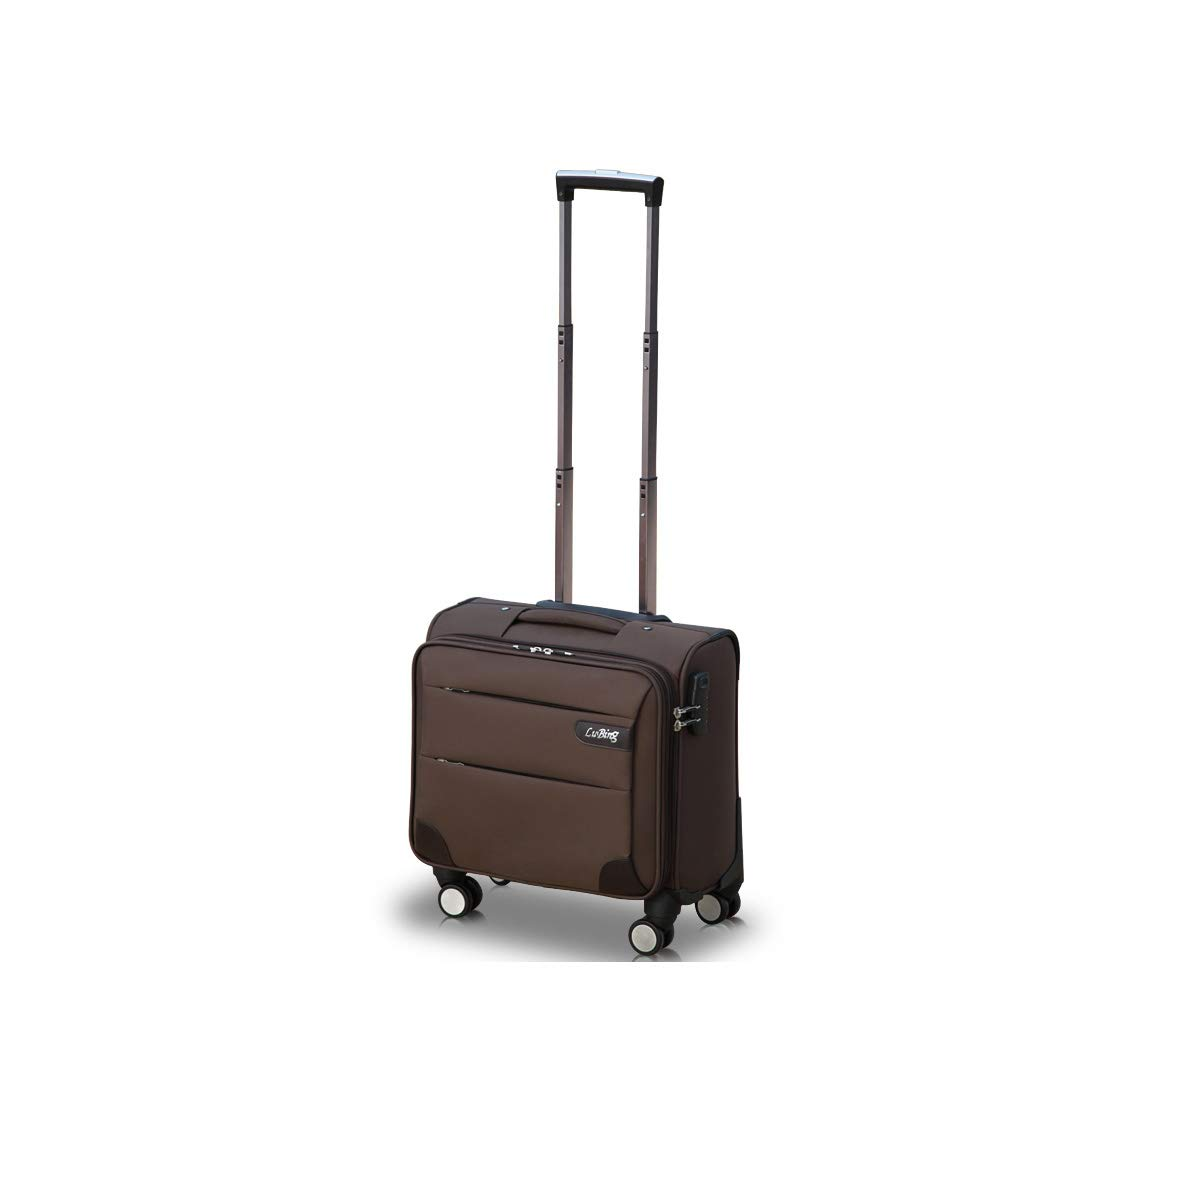 Black Latest Style Best Gift Shengshihuizhong Soft Rotating Luggage Trolley case Simple Style 16 inches Travel Organizer Carrying Luggage Color : Brown, Size : 16